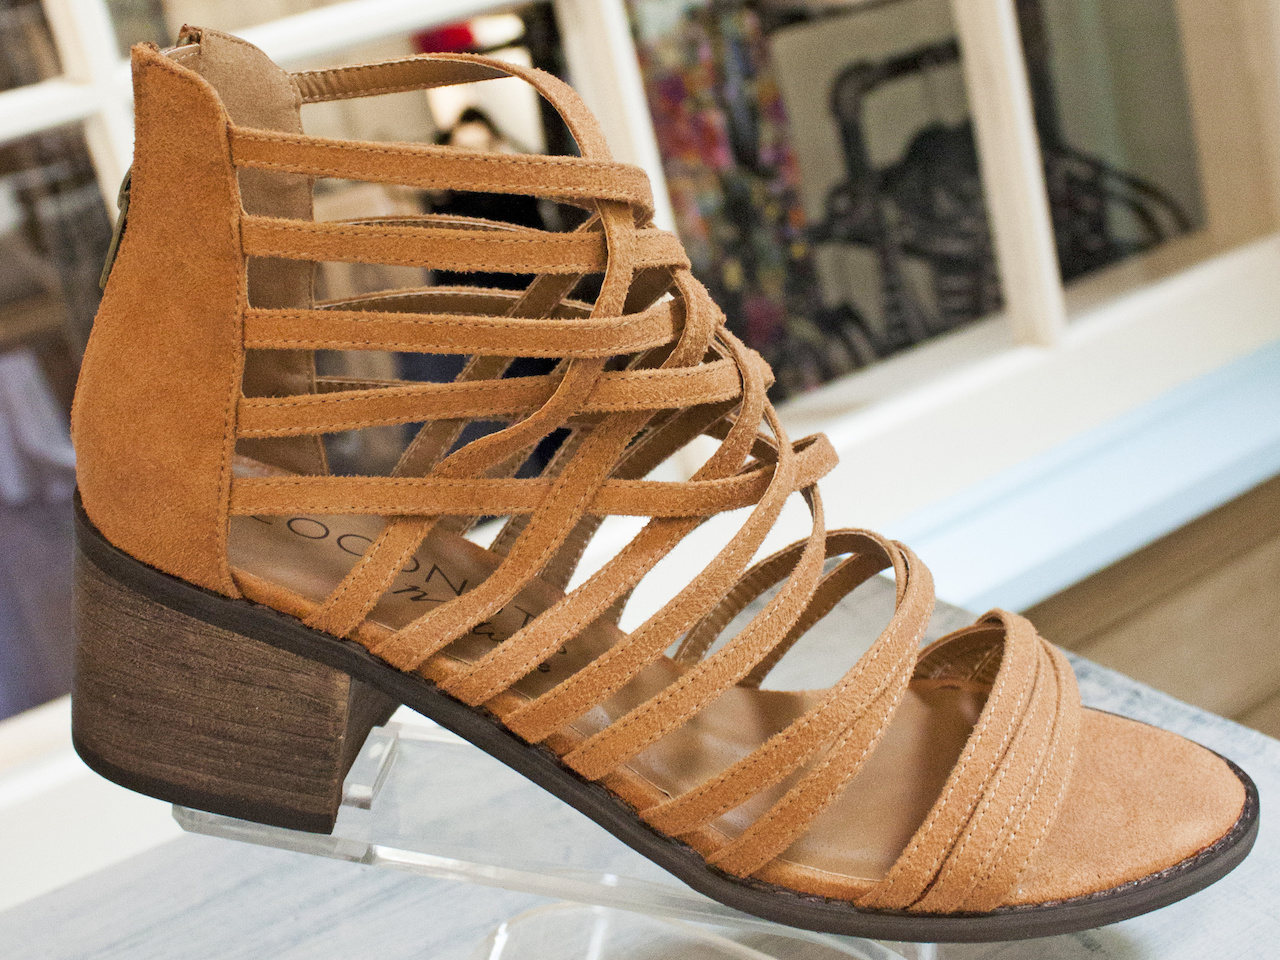 Boho chic: Strappy suede heels, $79, at More Therapy.